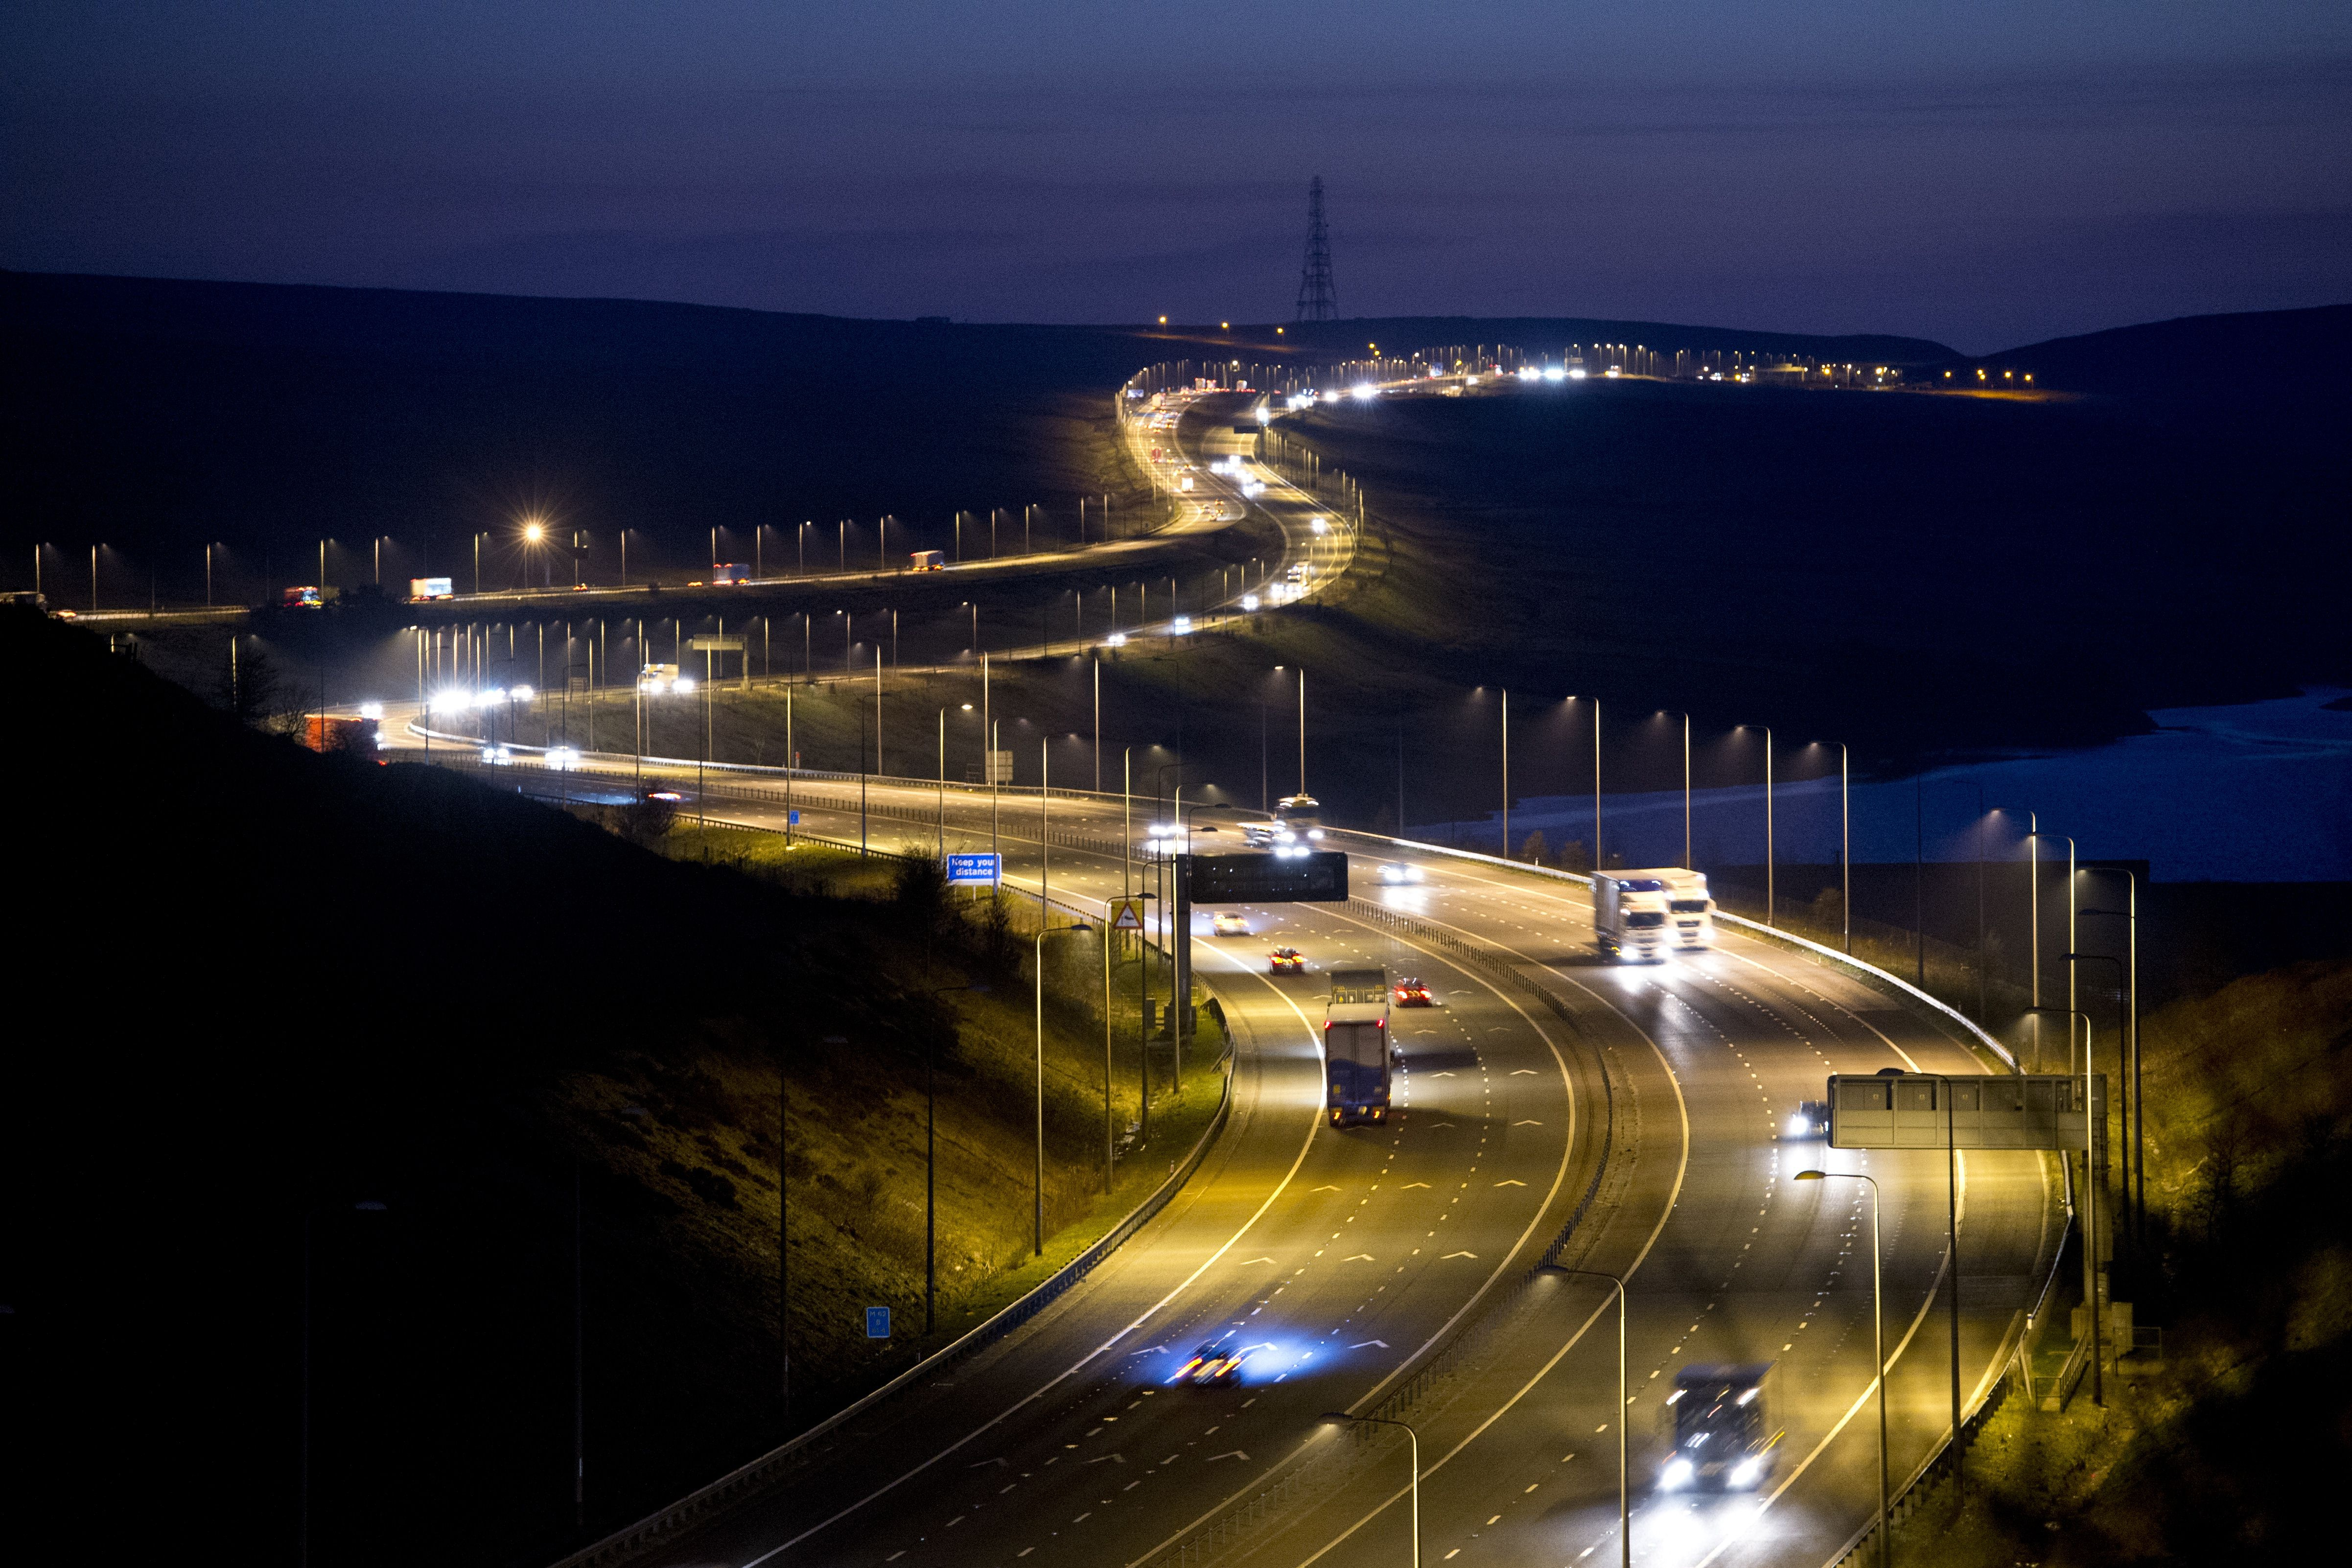 Traffic passes along the M62 motorway at night in north west England. The UK government is testing under-the-road wireless charging for electric vehicles.